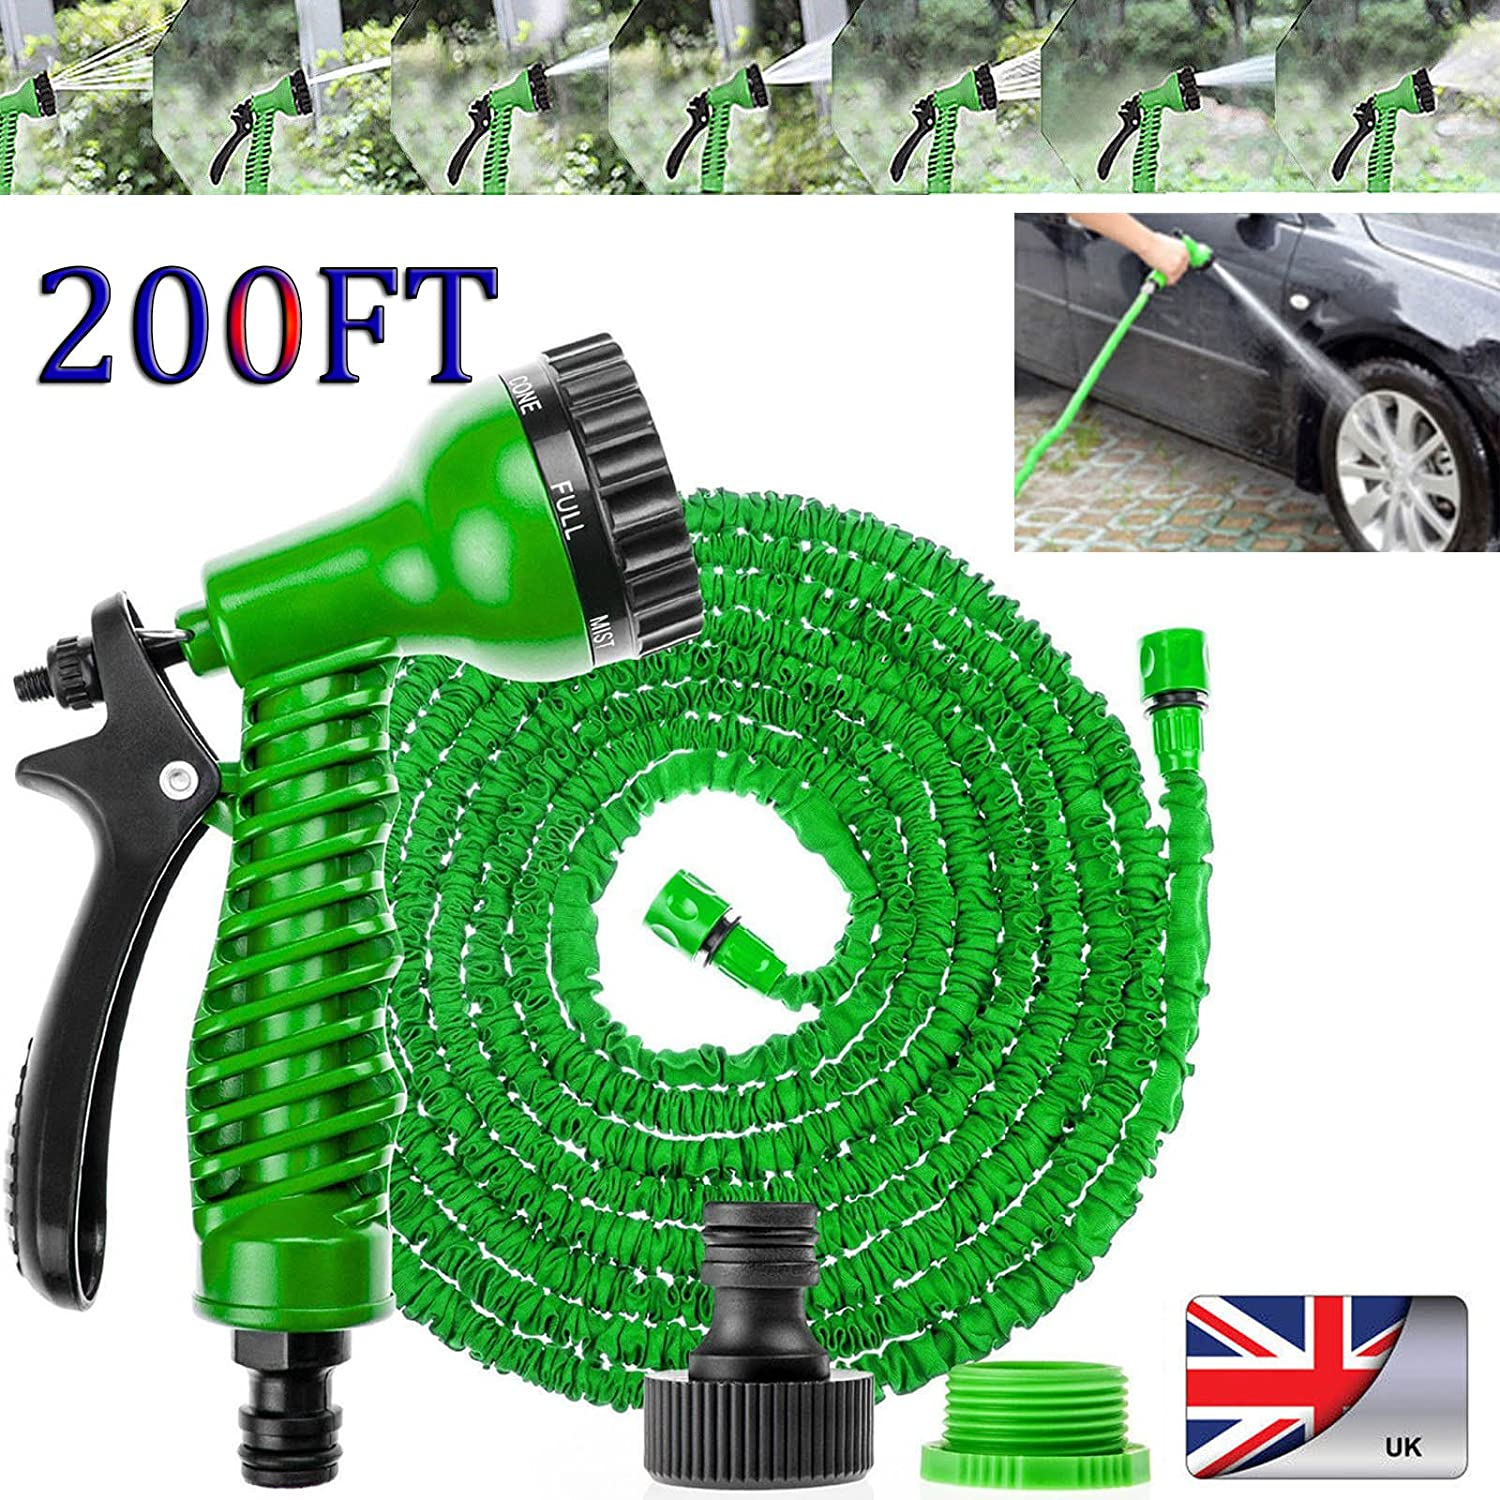 Autofather 200FT Expandable Water Pipe Household Telescopic Hose with 7 Spraying Settings Portable Kit for Washing Car Garden Watering Easy to Carry Storage, 2 Year Warranty (Green)